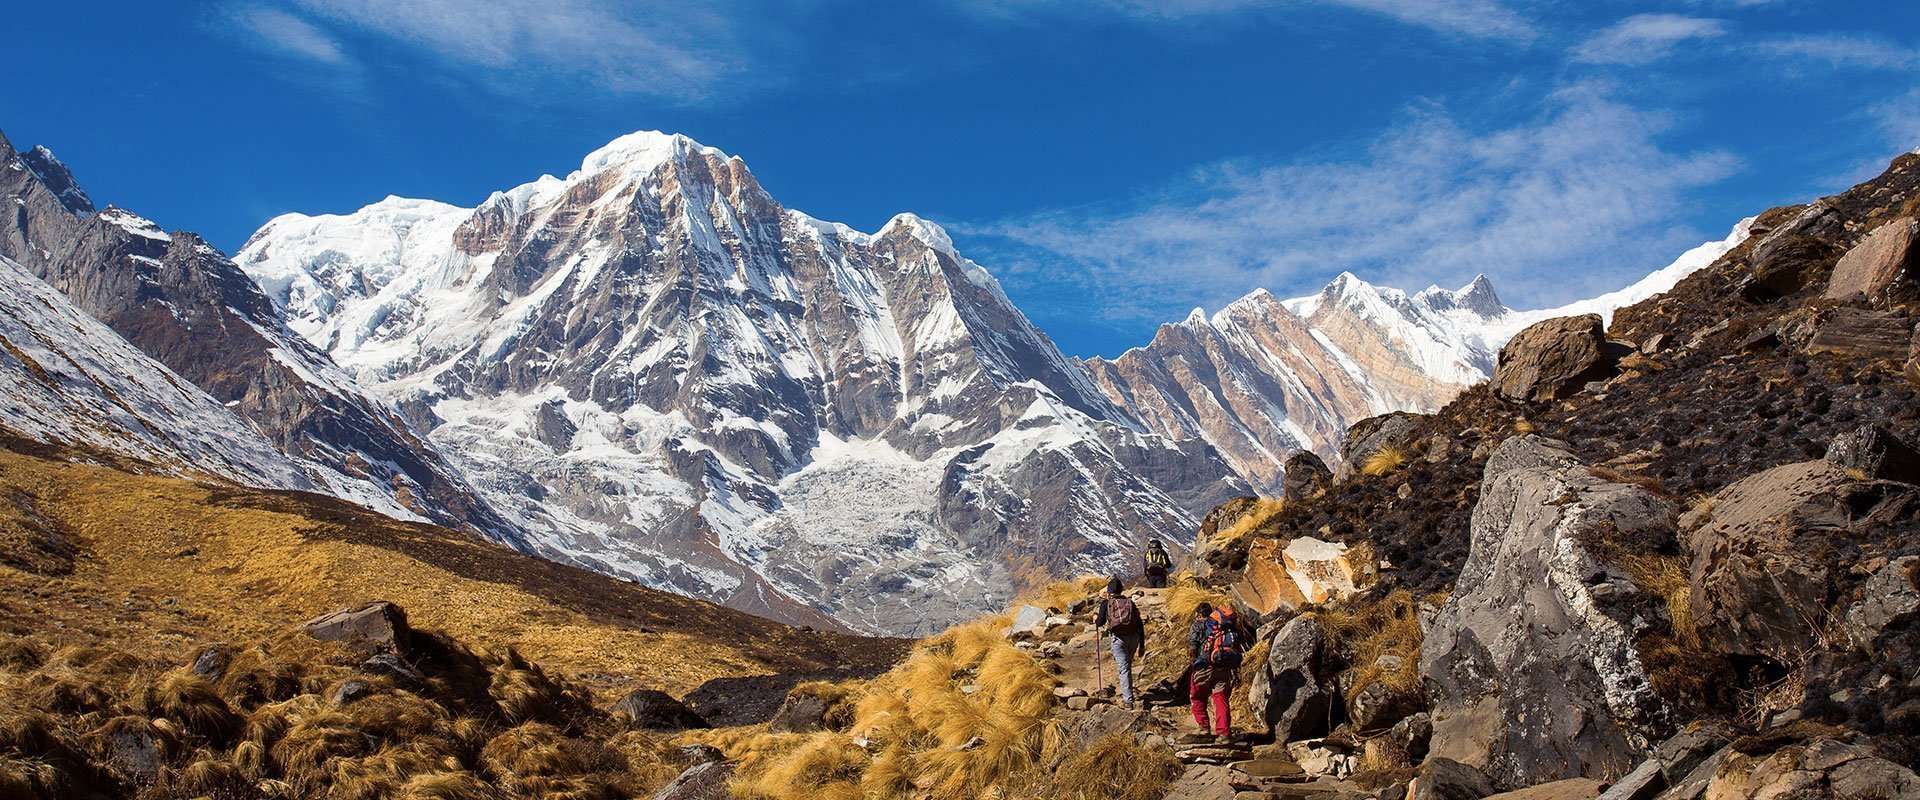 Trekking in Nepal Travel Nepal